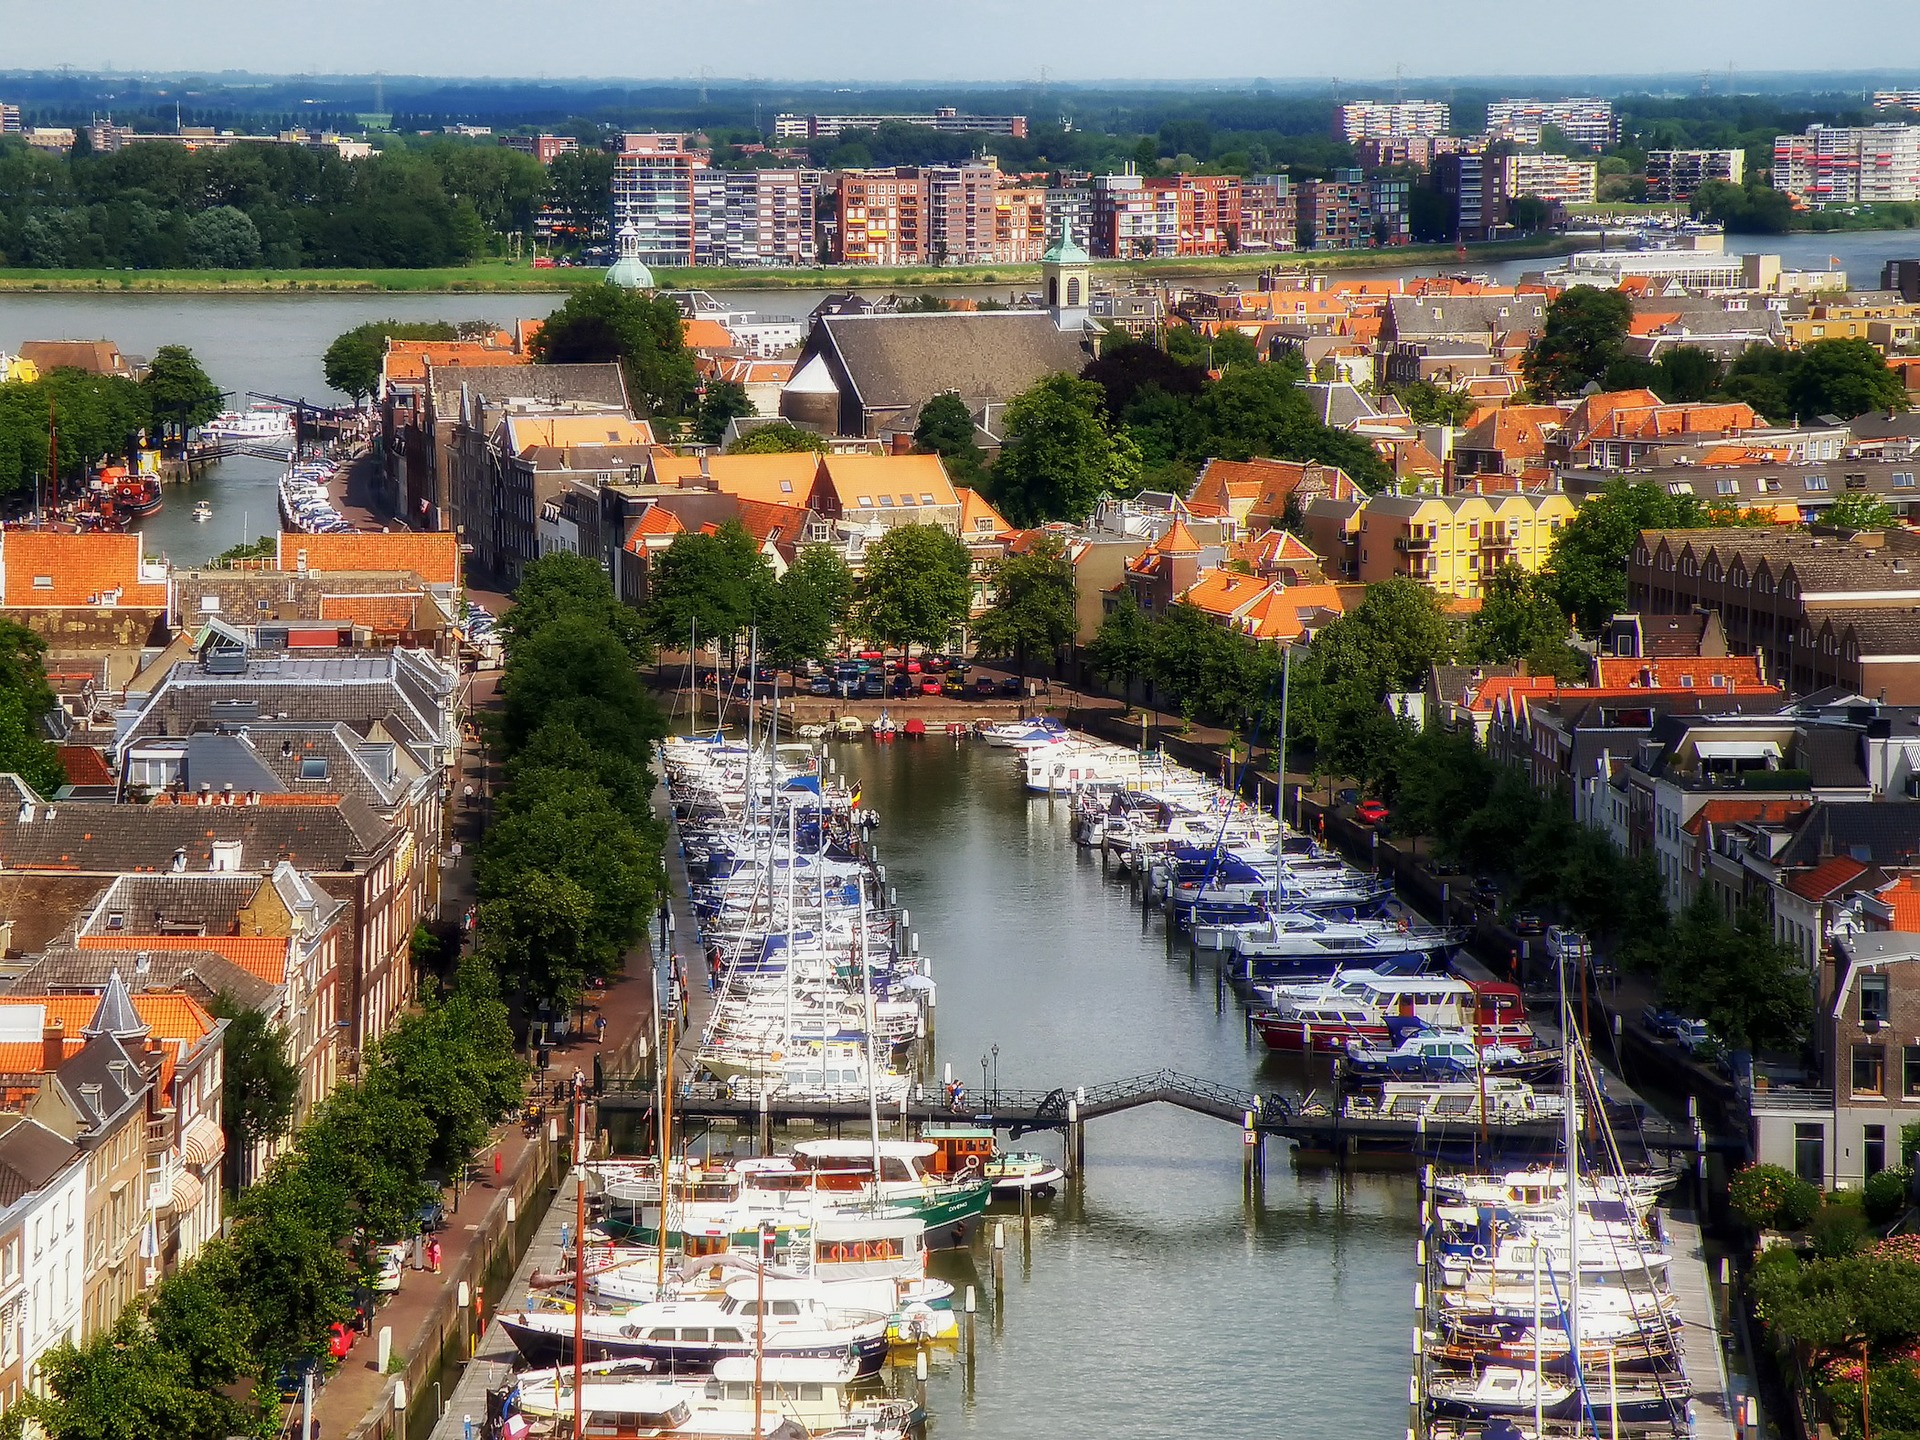 Dordrecht in the Netherlands